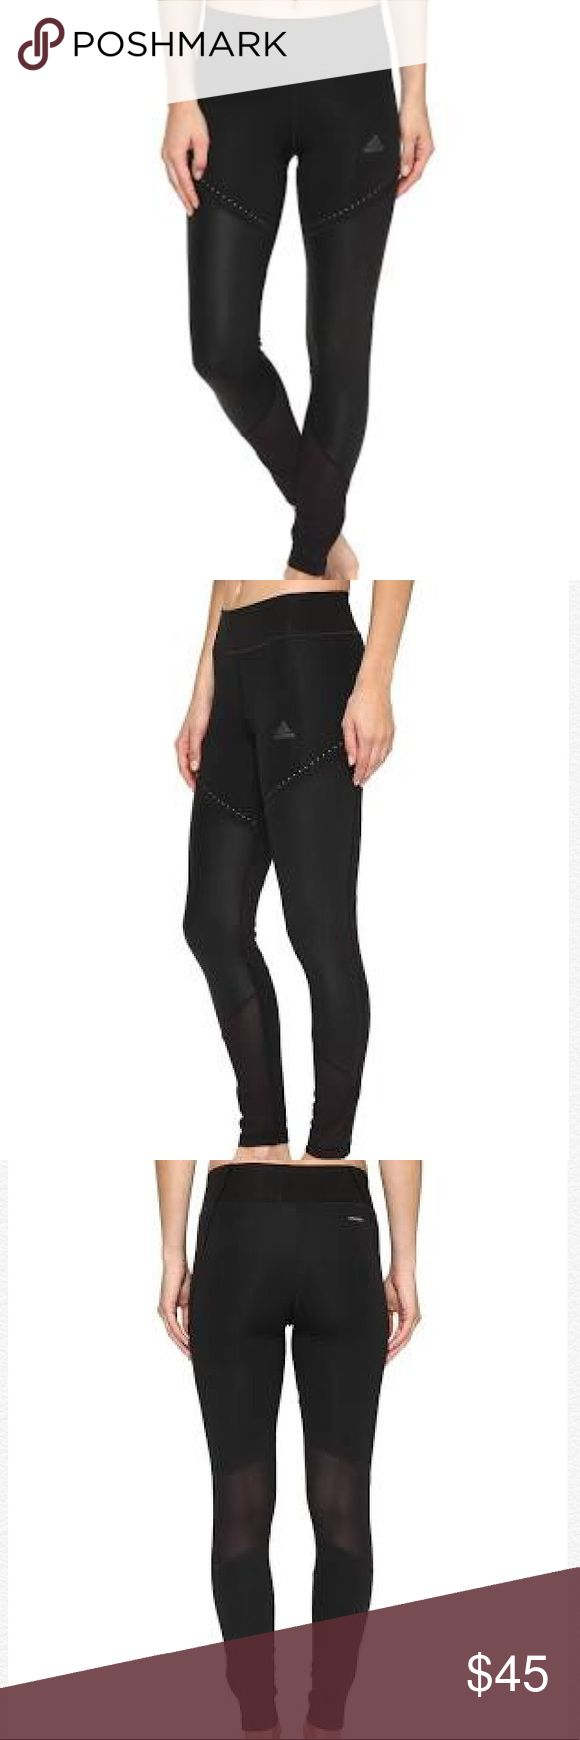 ADIDAS WOW DROP 1 climalite ultimate tights NWT ADIDAS  climalite WOW DROP 1 ULTIMATE TIGHTS  BLACK BQ2126  116255629  sku 190303256966 Elastic waistband ensures a comfortable fit. Hidden key pocket keeps small items stored away. Mesh panels increase breathability when things heat up. Reflective elements help increase visibility in low-light conditions. Cropped cuffs. 79% recycled polyester, 21% elastane.  Material:Spandex, Mesh, Recycled Polyester Size: XL  KICK ASS IN KICKASS TIGHTS G…